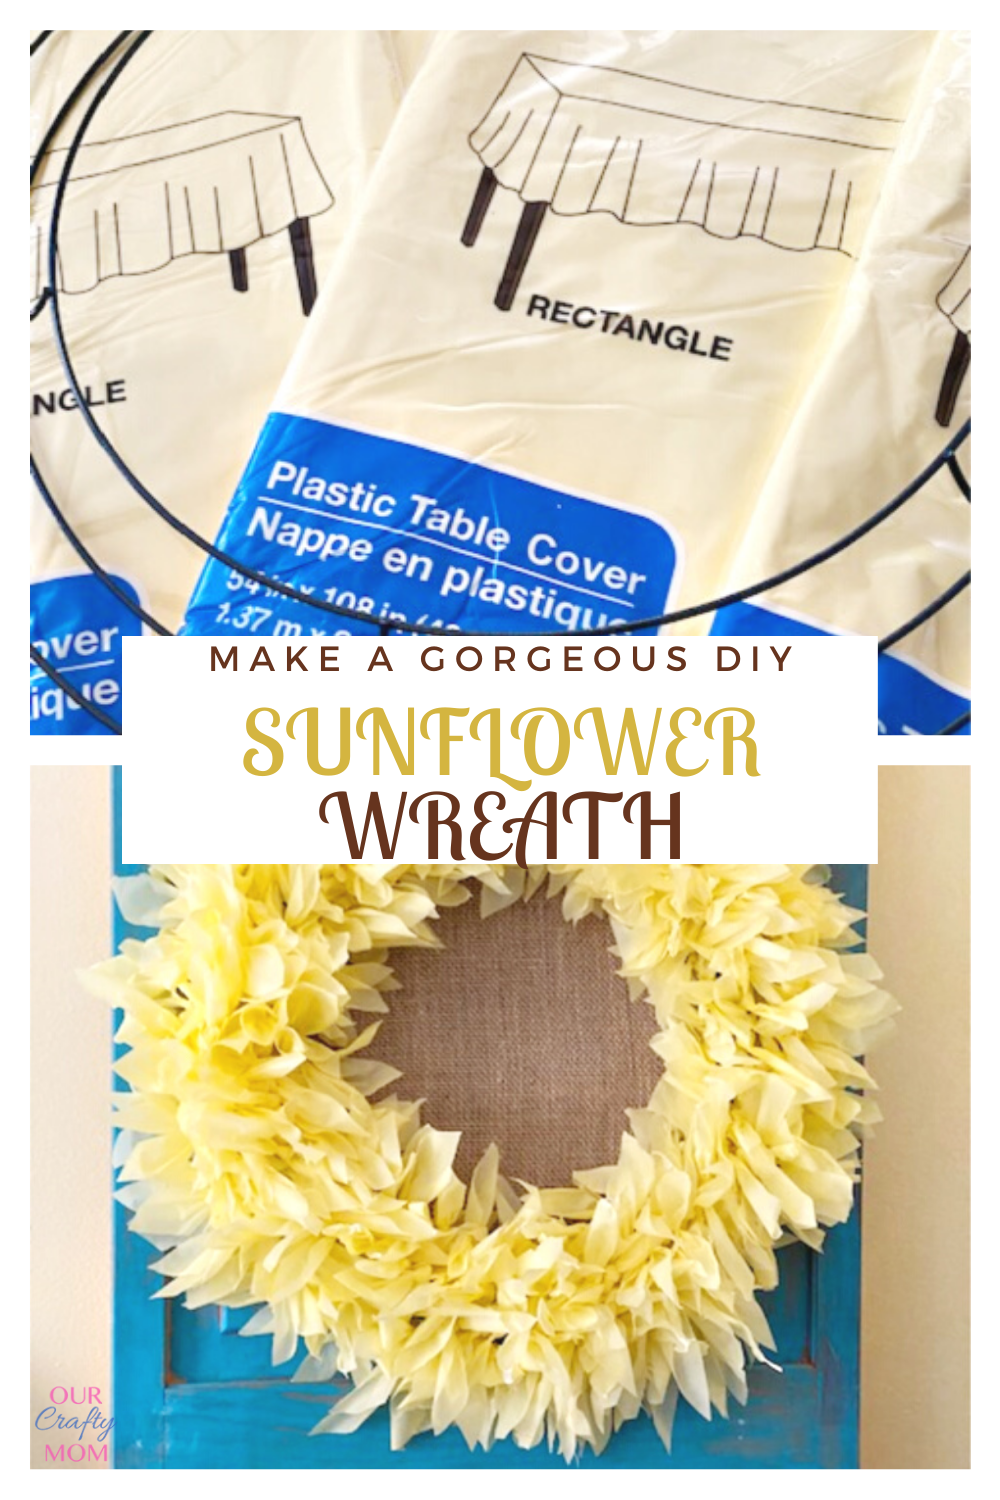 make a gorgeous diy sunflower wreath collage